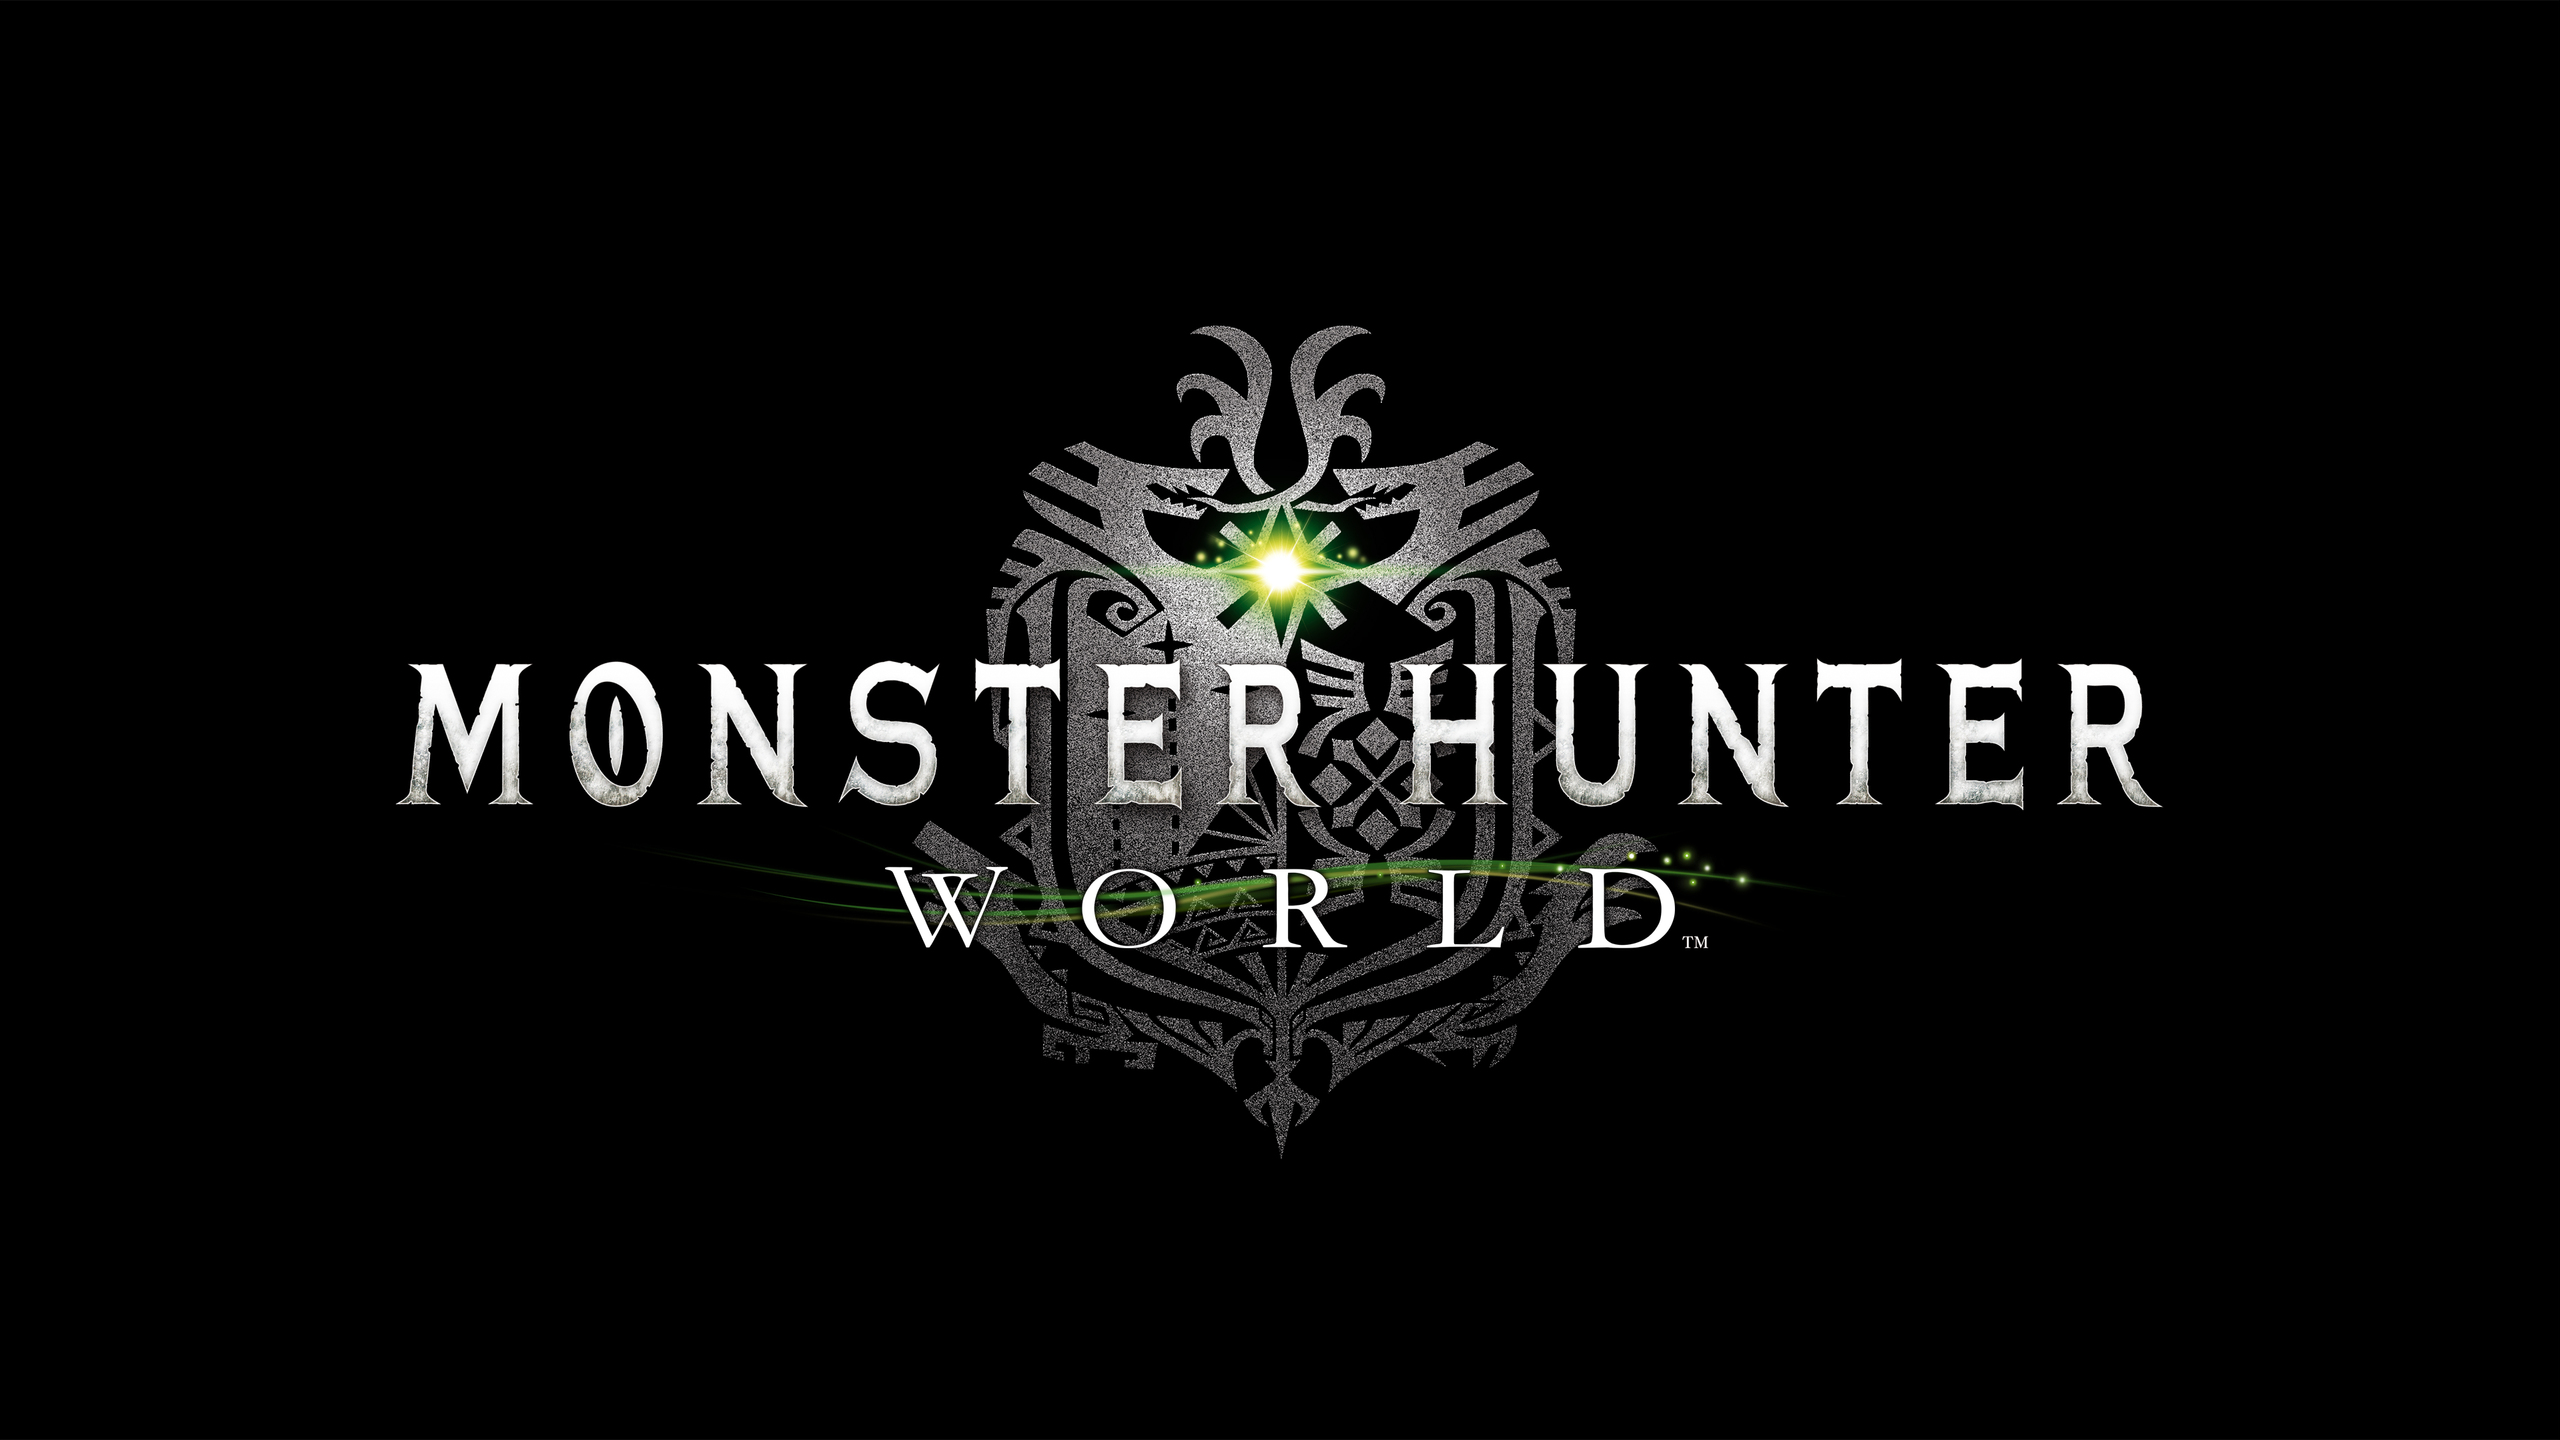 monster hunter world wallpaper 1440p